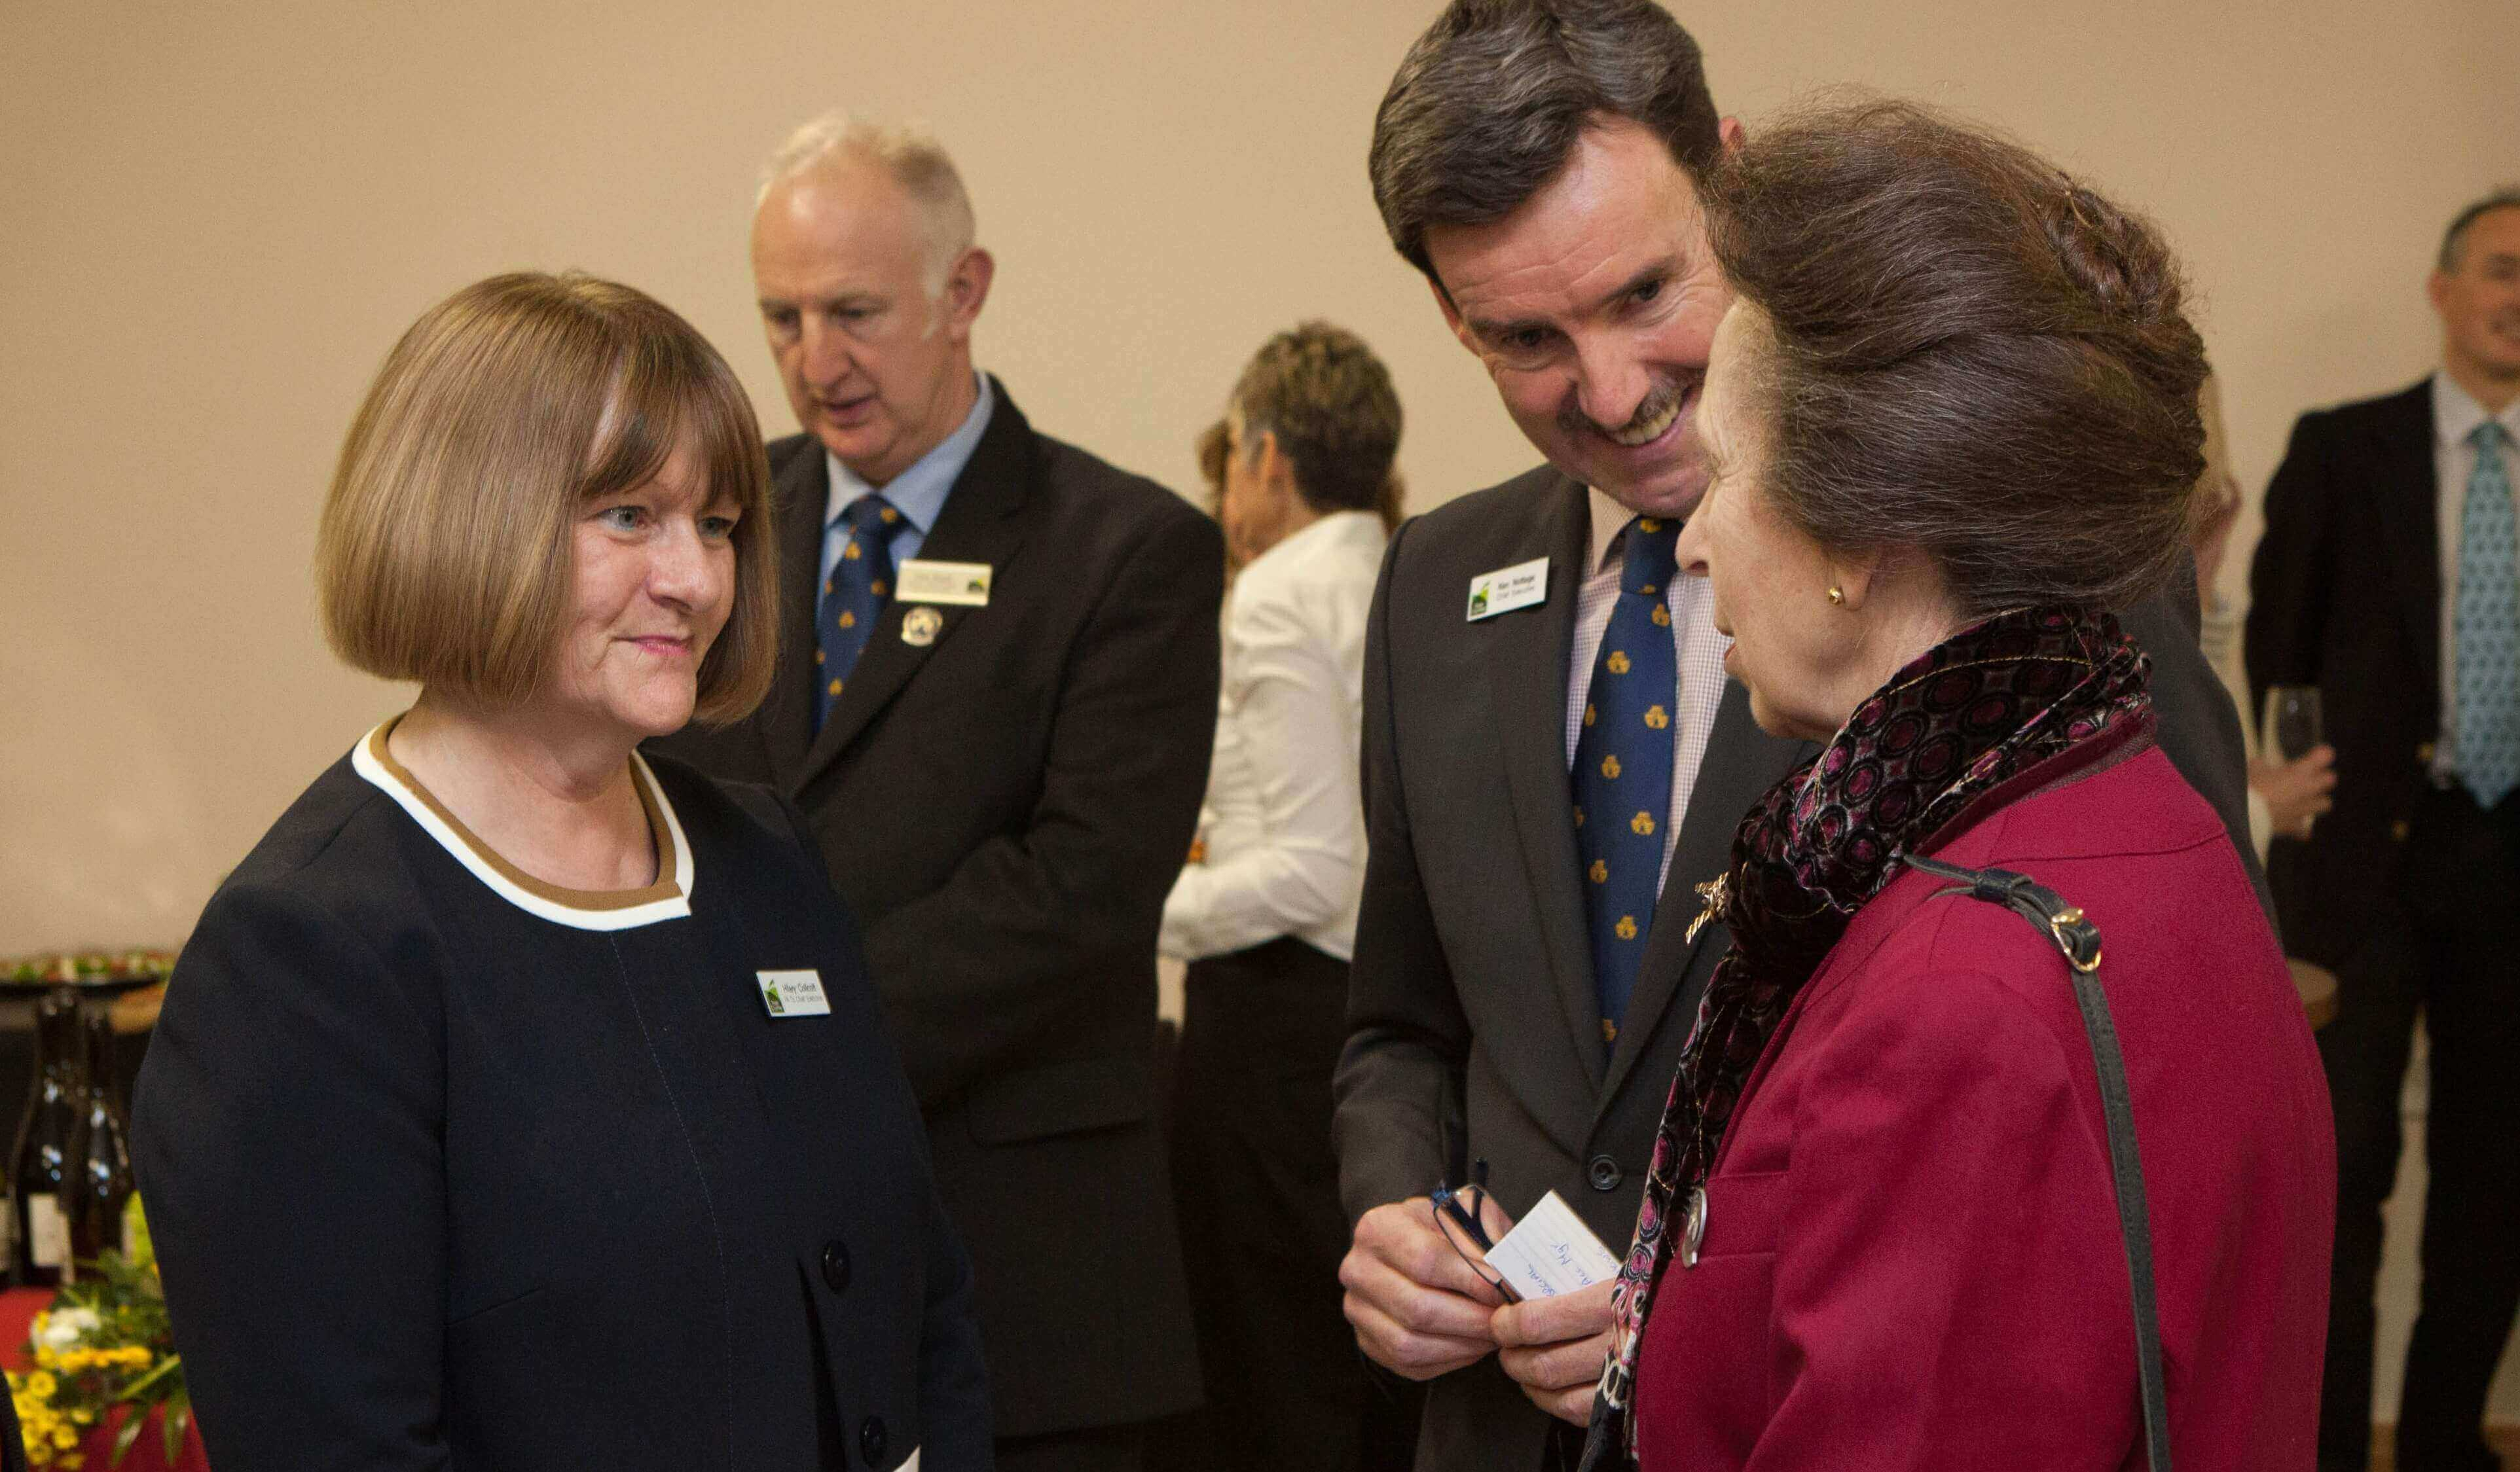 Hilary Collcott - PA to CE Three Counties, Ken Nottage CE Three Counties meeting HRH The Princess Royal.jpg